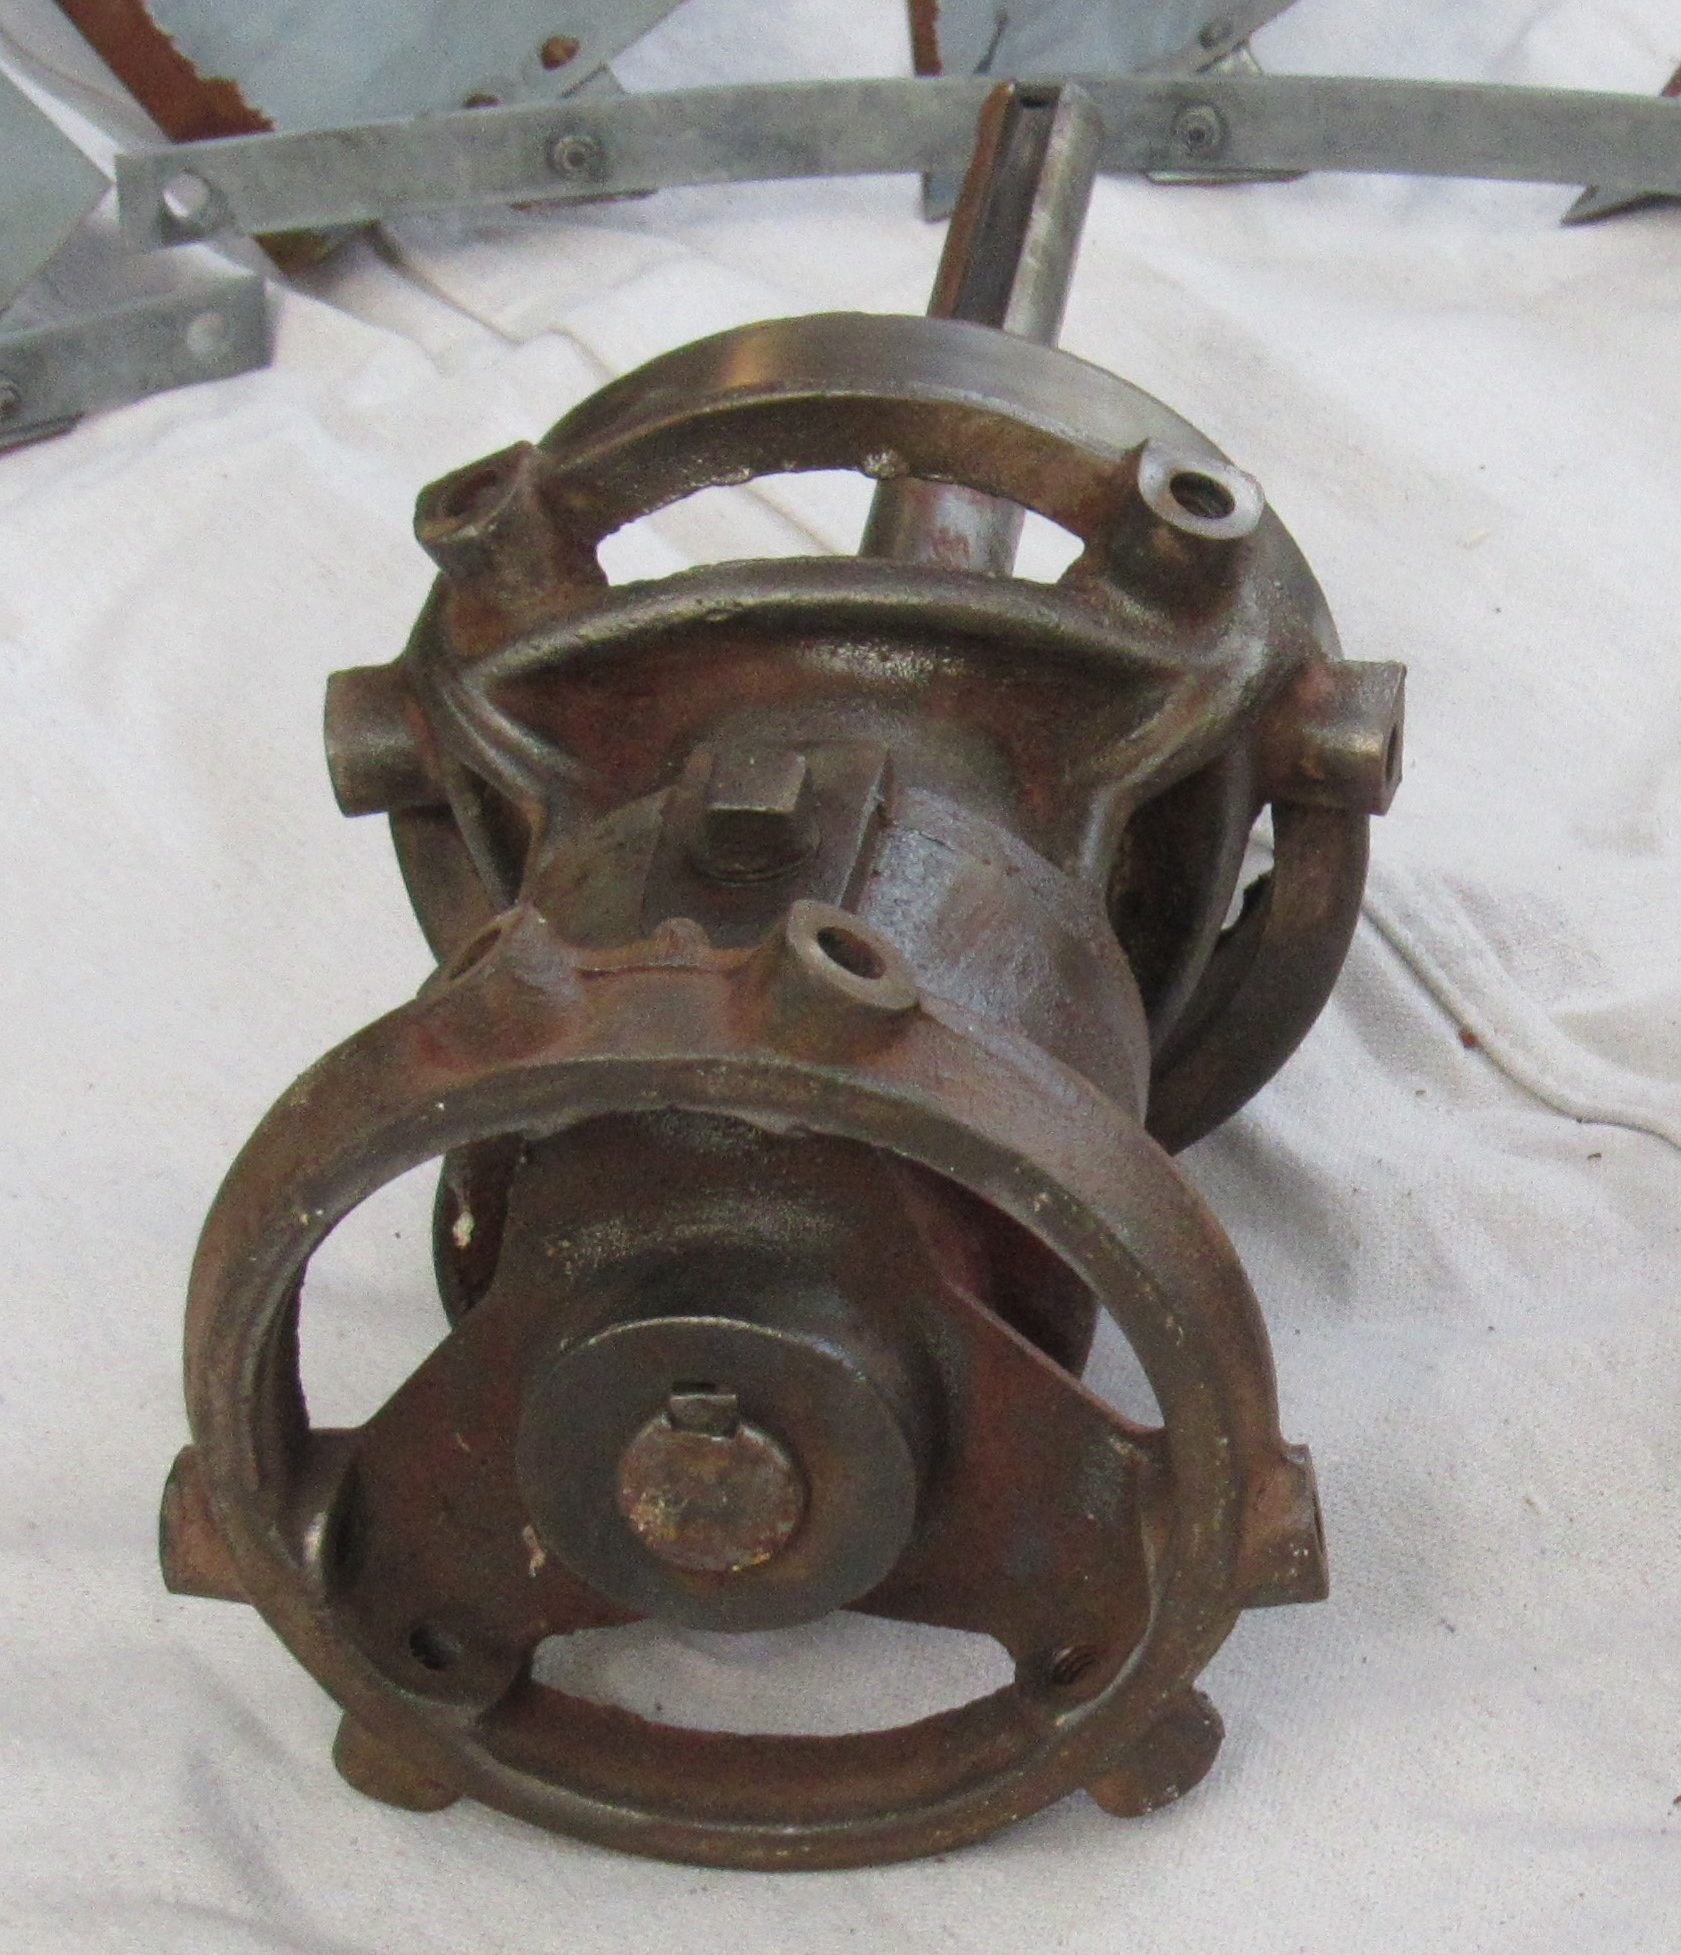 Vintage Style Hub (1933 - 1964) *This hub is cast in Mexico & sold by 702 LLC in Laredo, Texas*